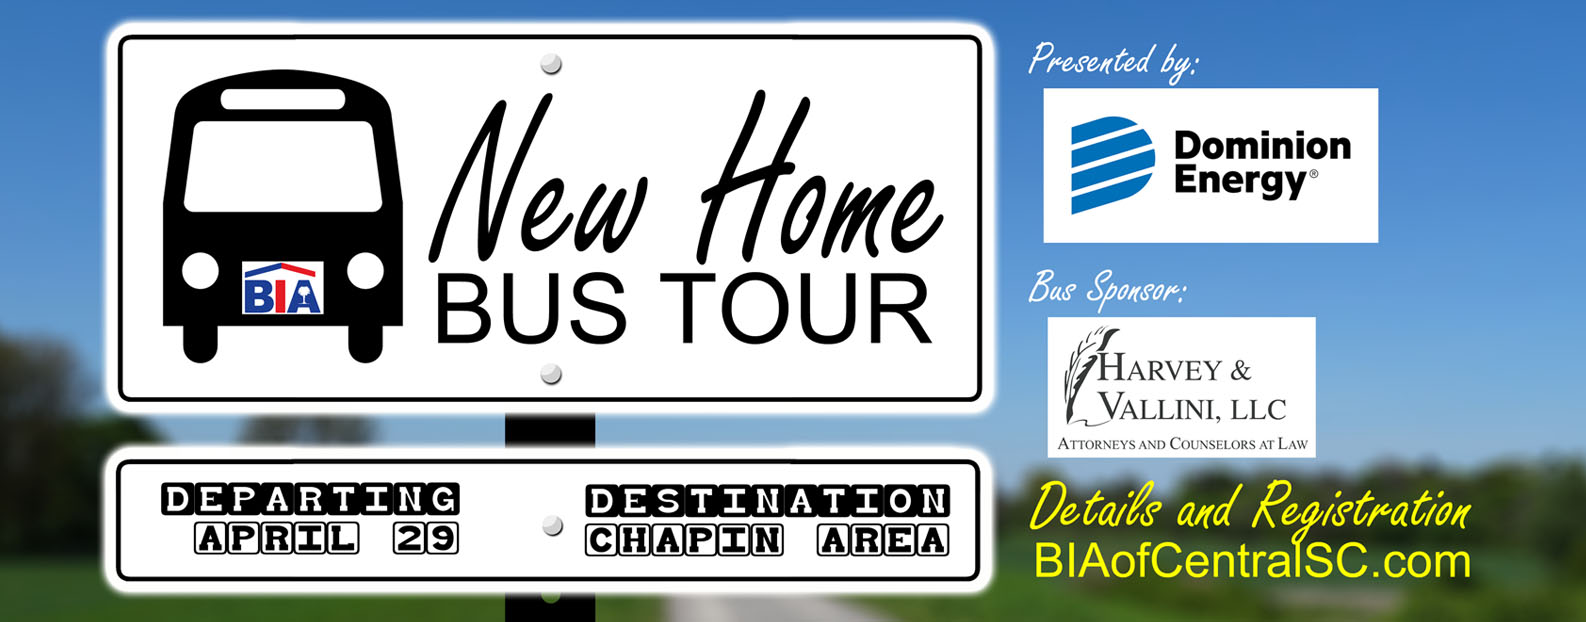 2020 New Home Bus Tour - Chapin